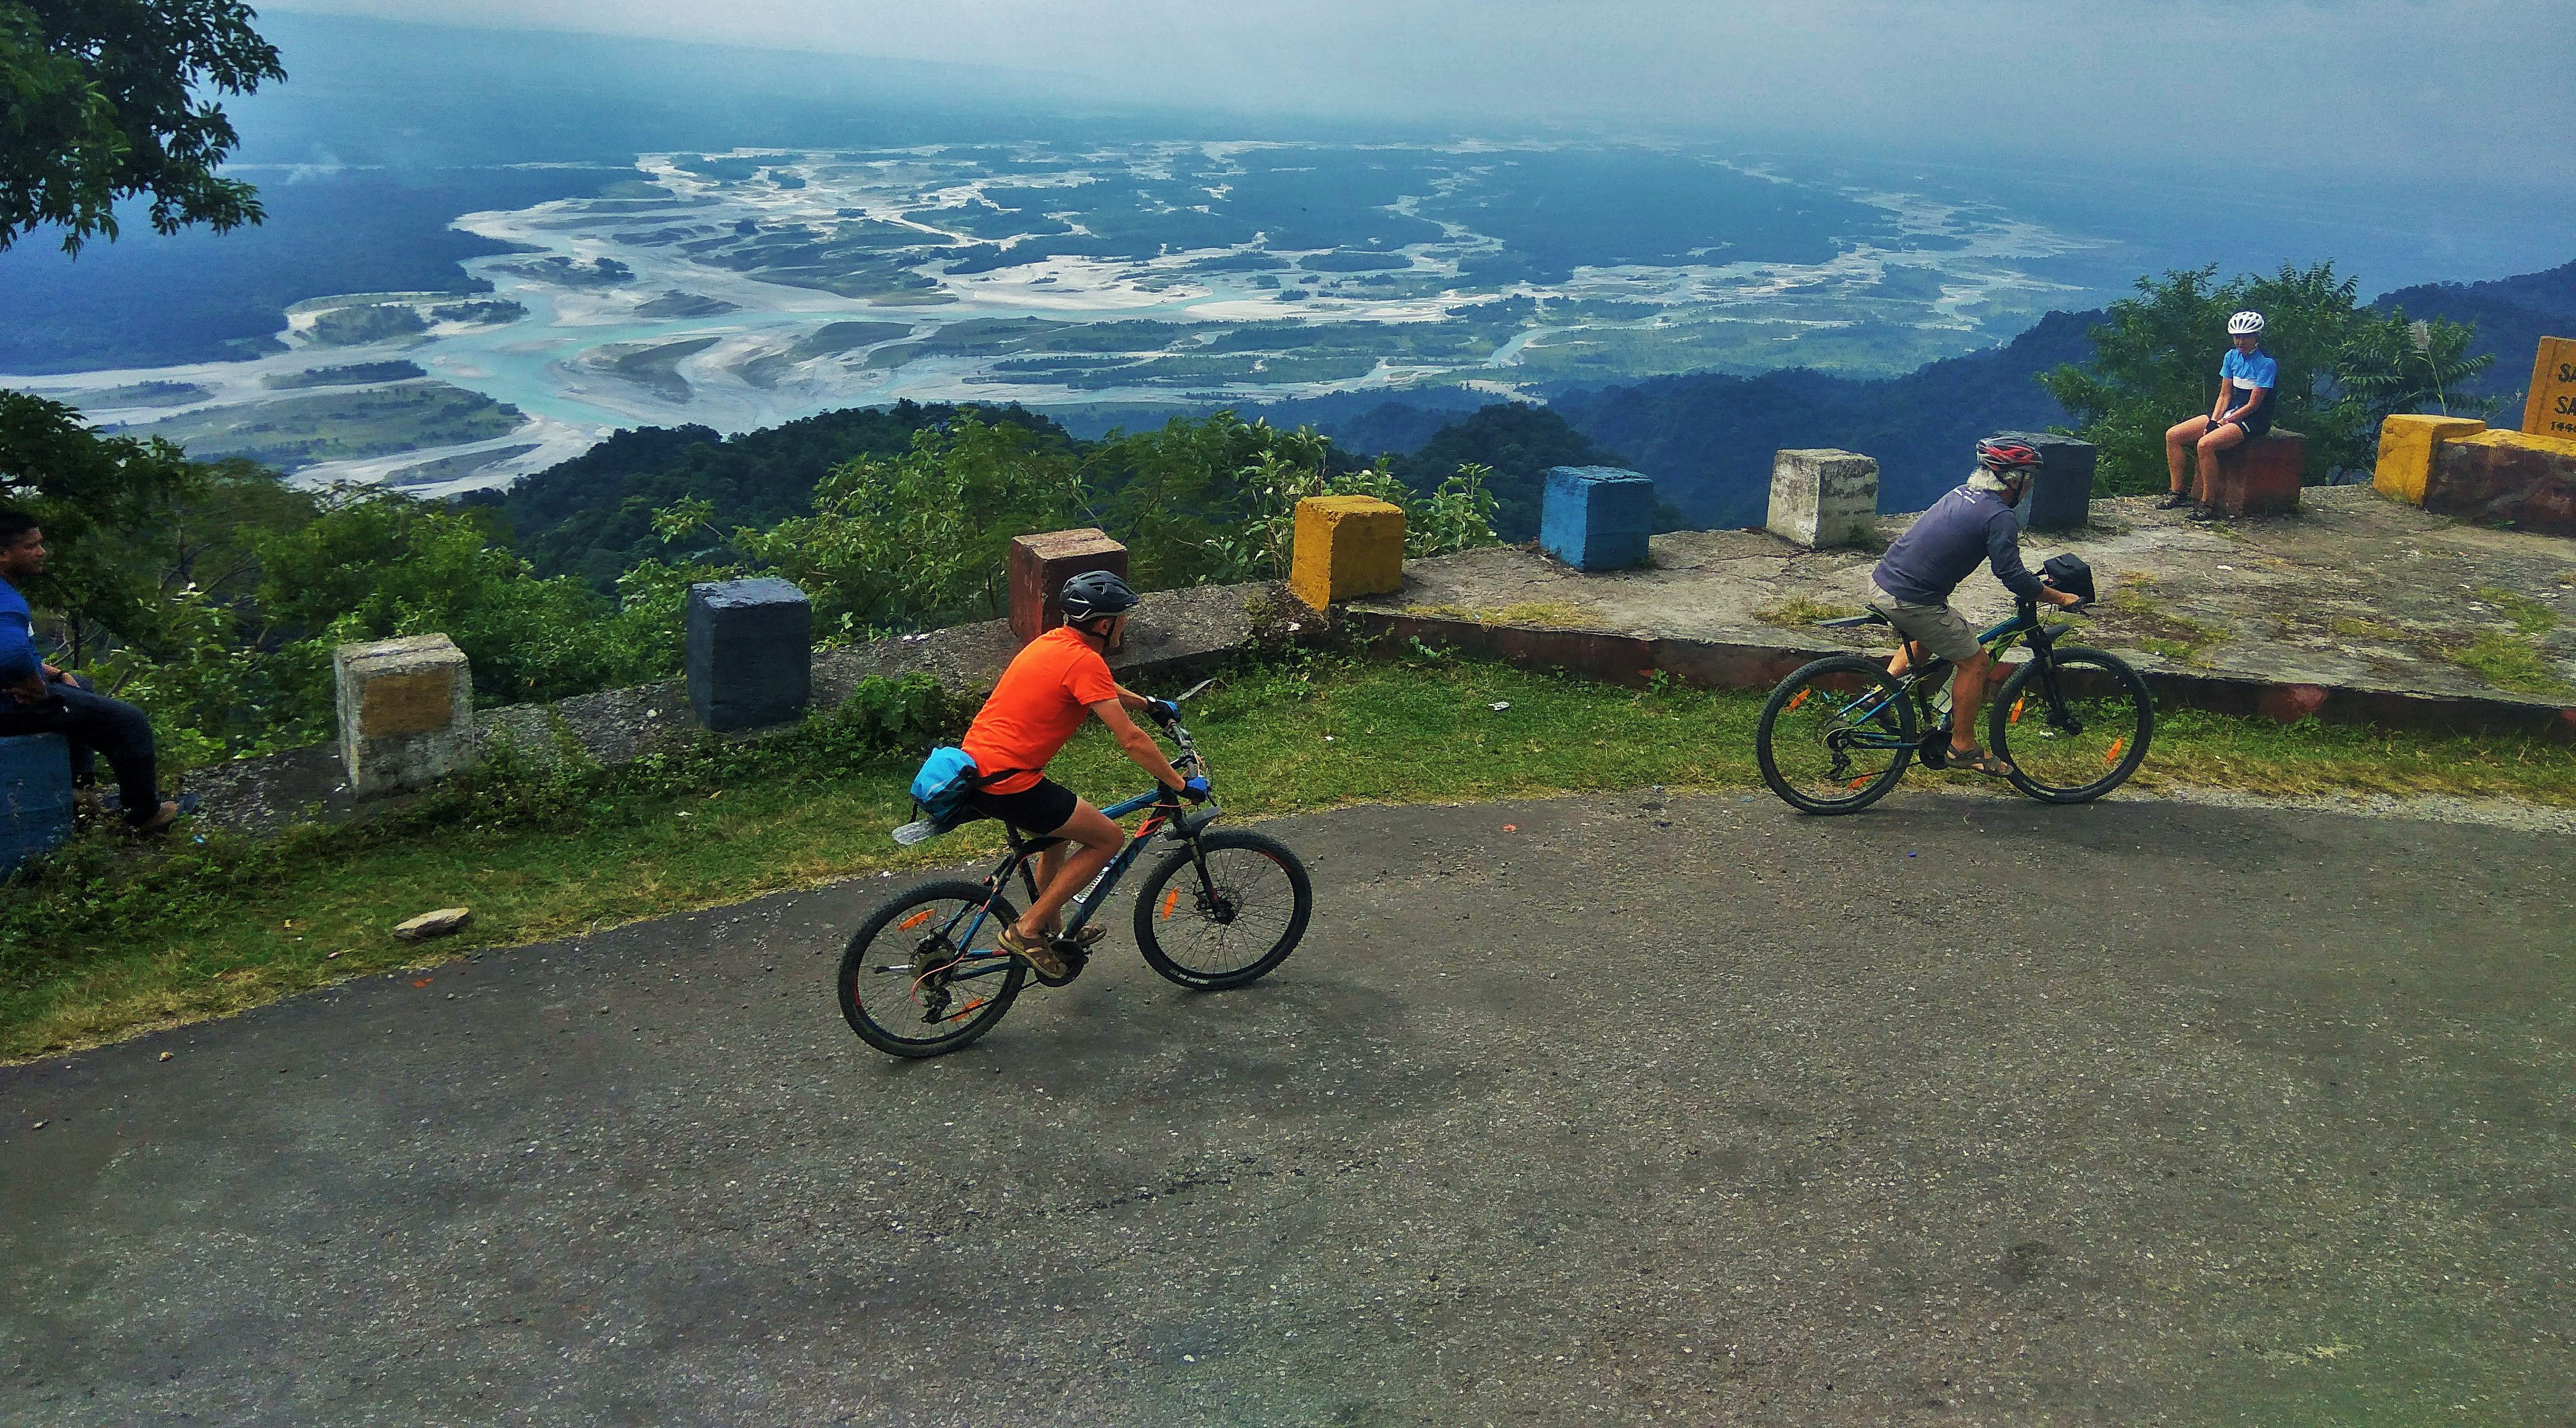 Cycleing in Northeast India